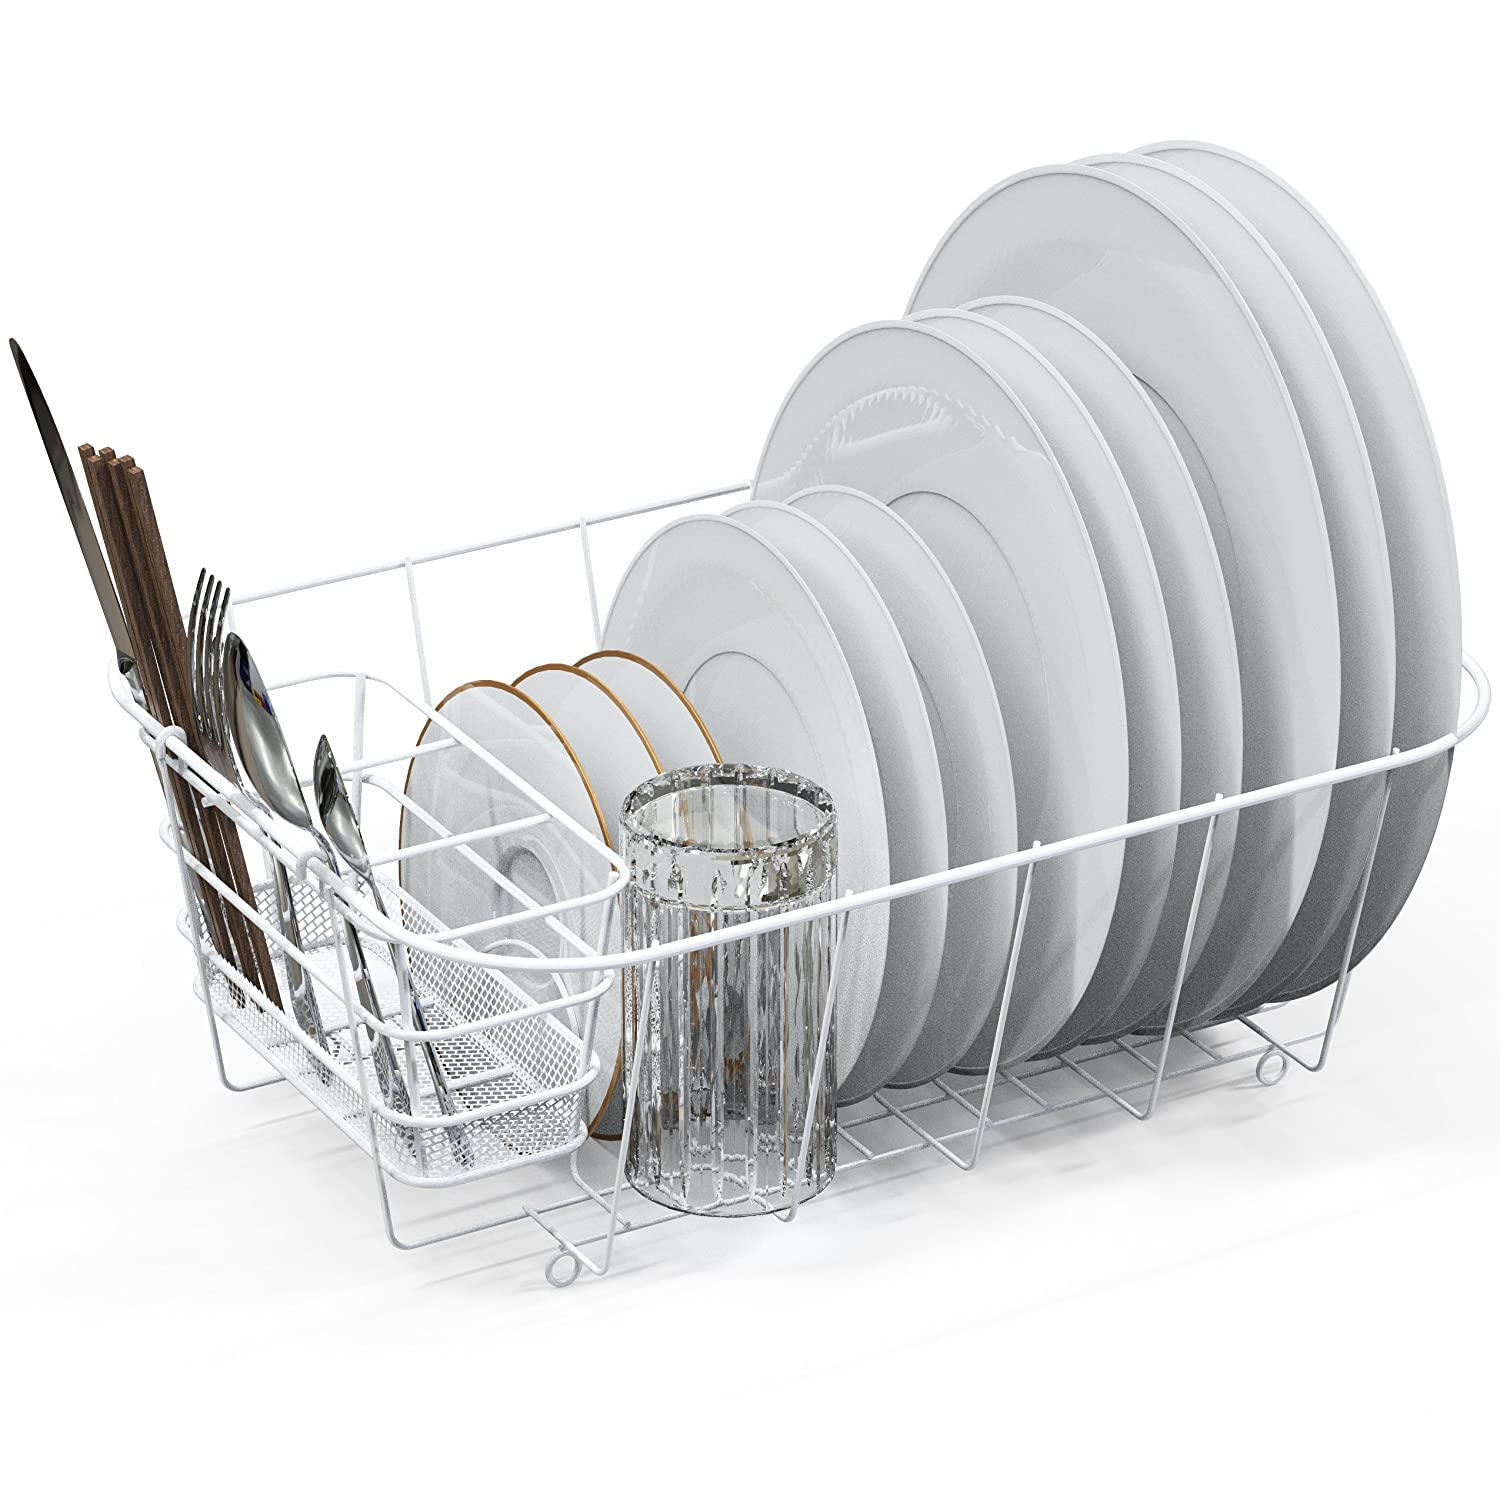 Dish Drying Rack Drainer Basket w/Utensil Caddy, White Simple Houseware CO-020-1